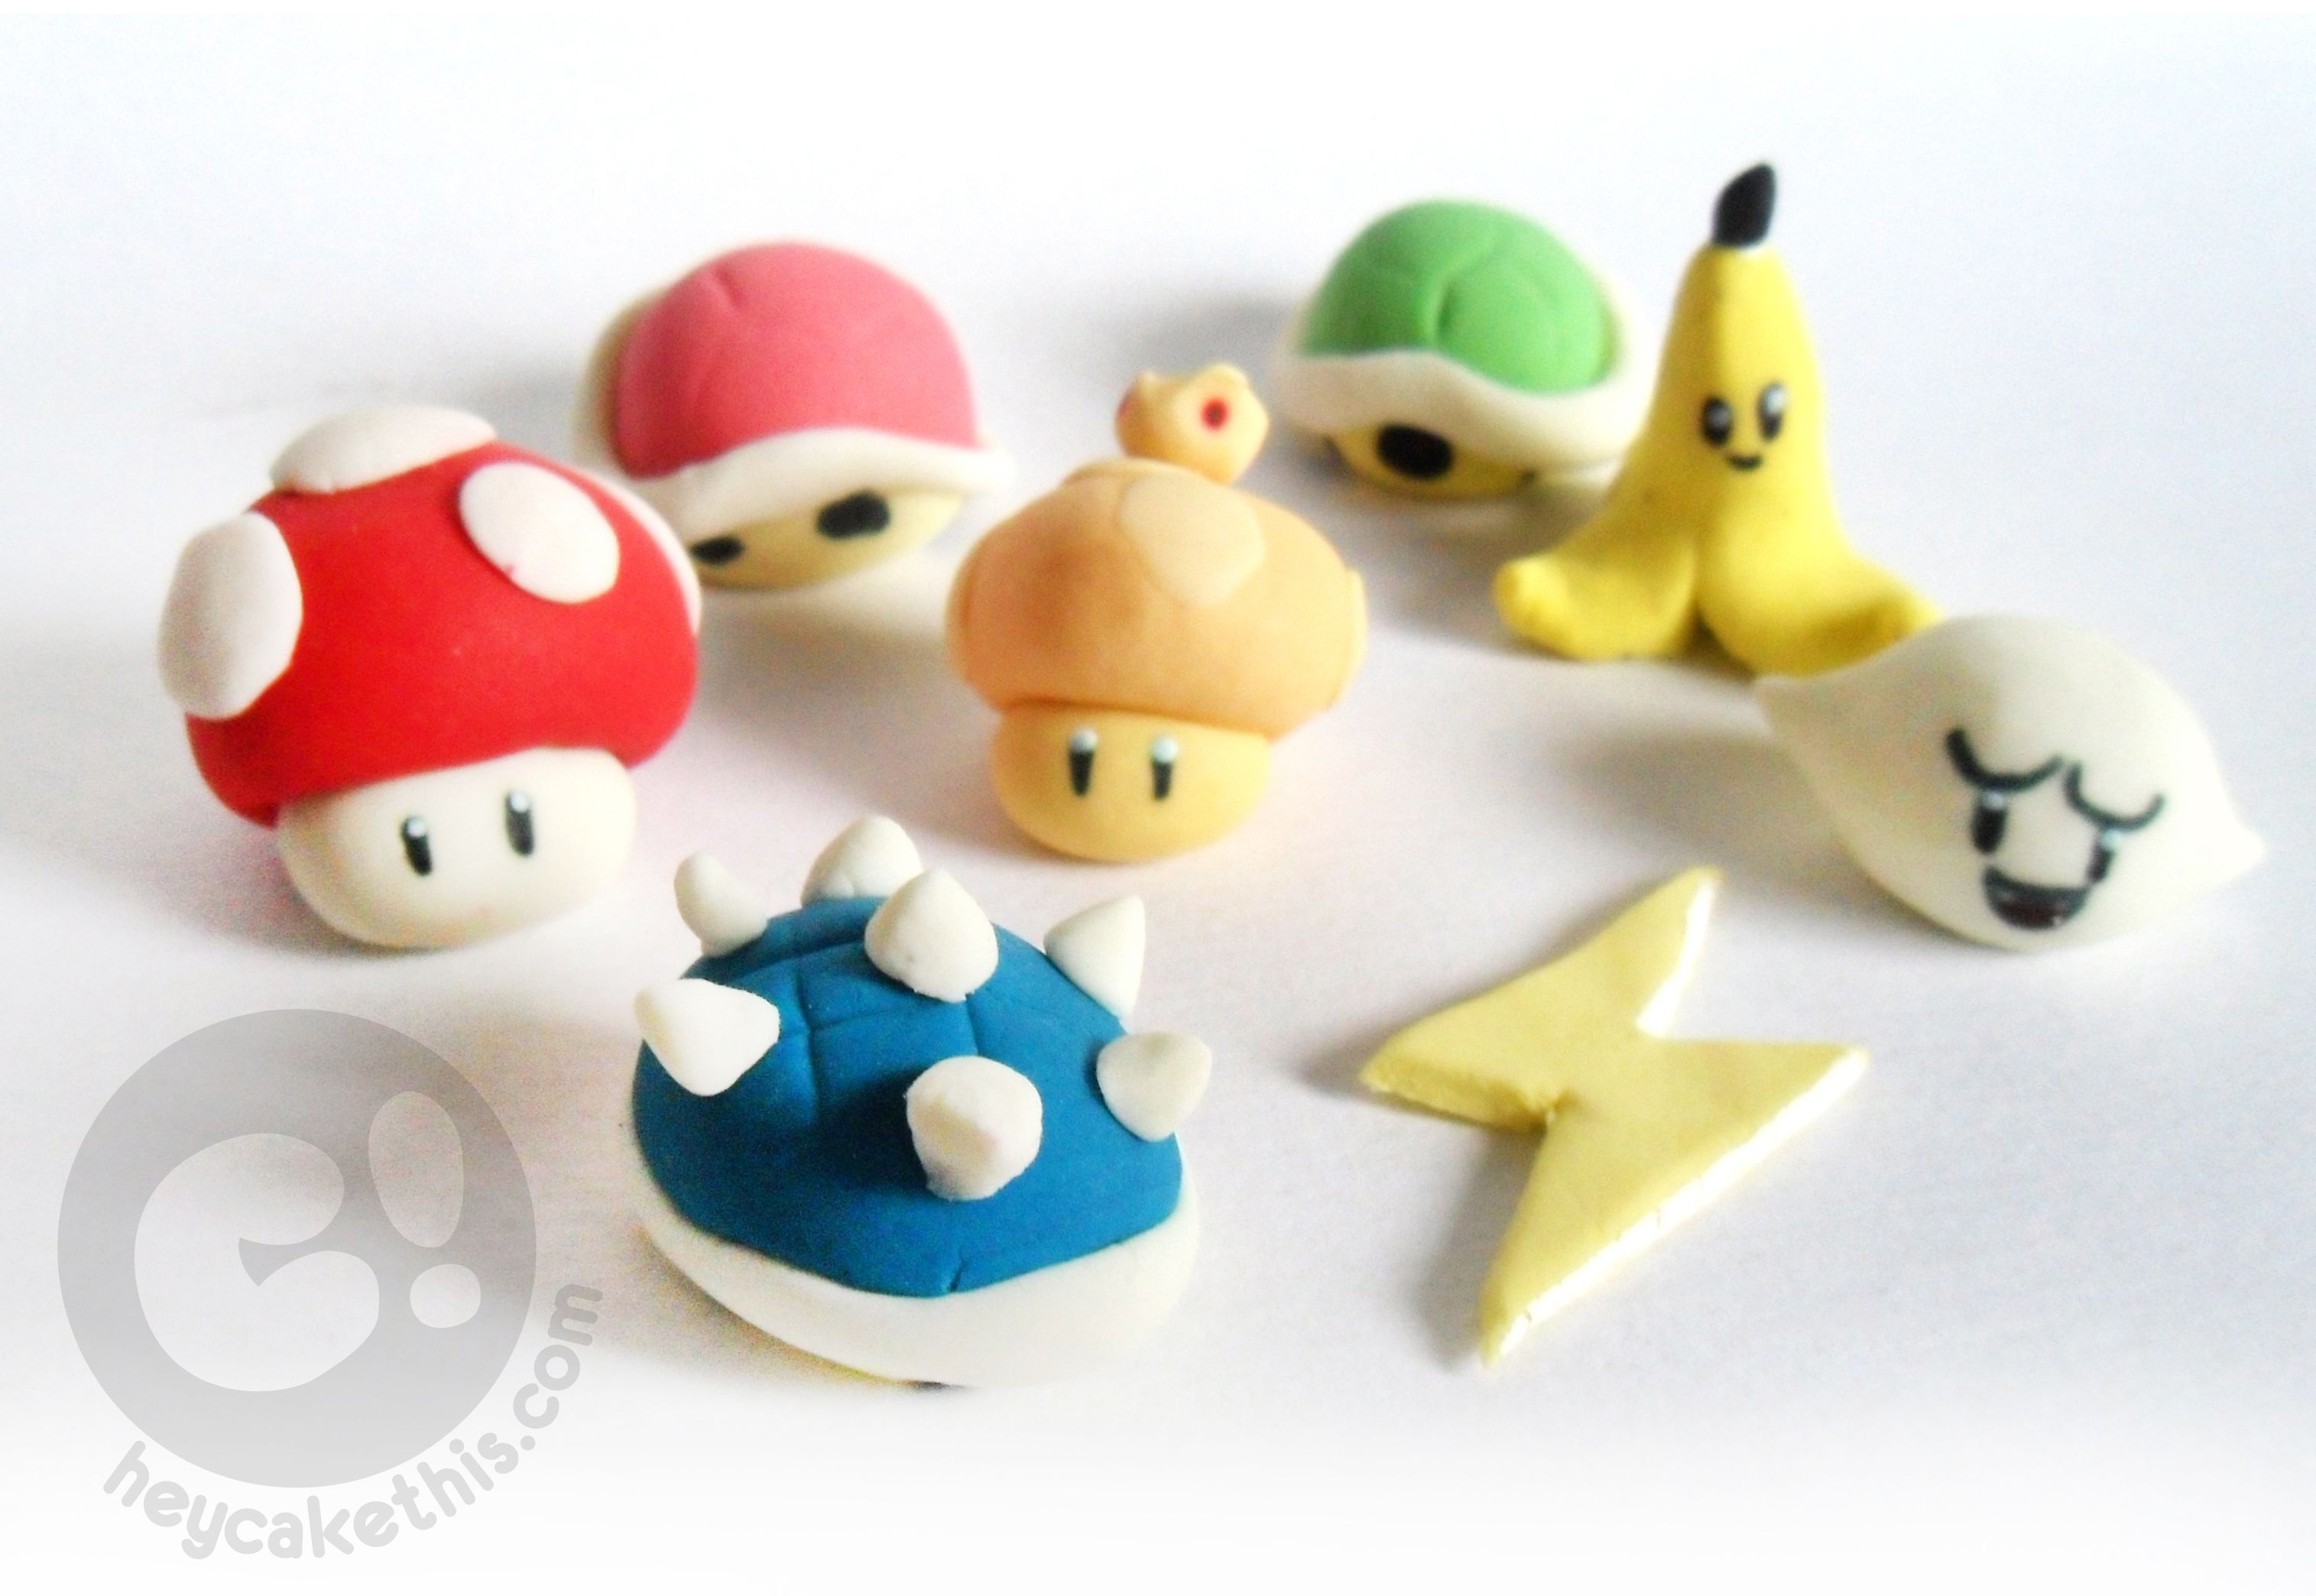 Mario Kart Themed Fondant Toppers For A Video Game Launch